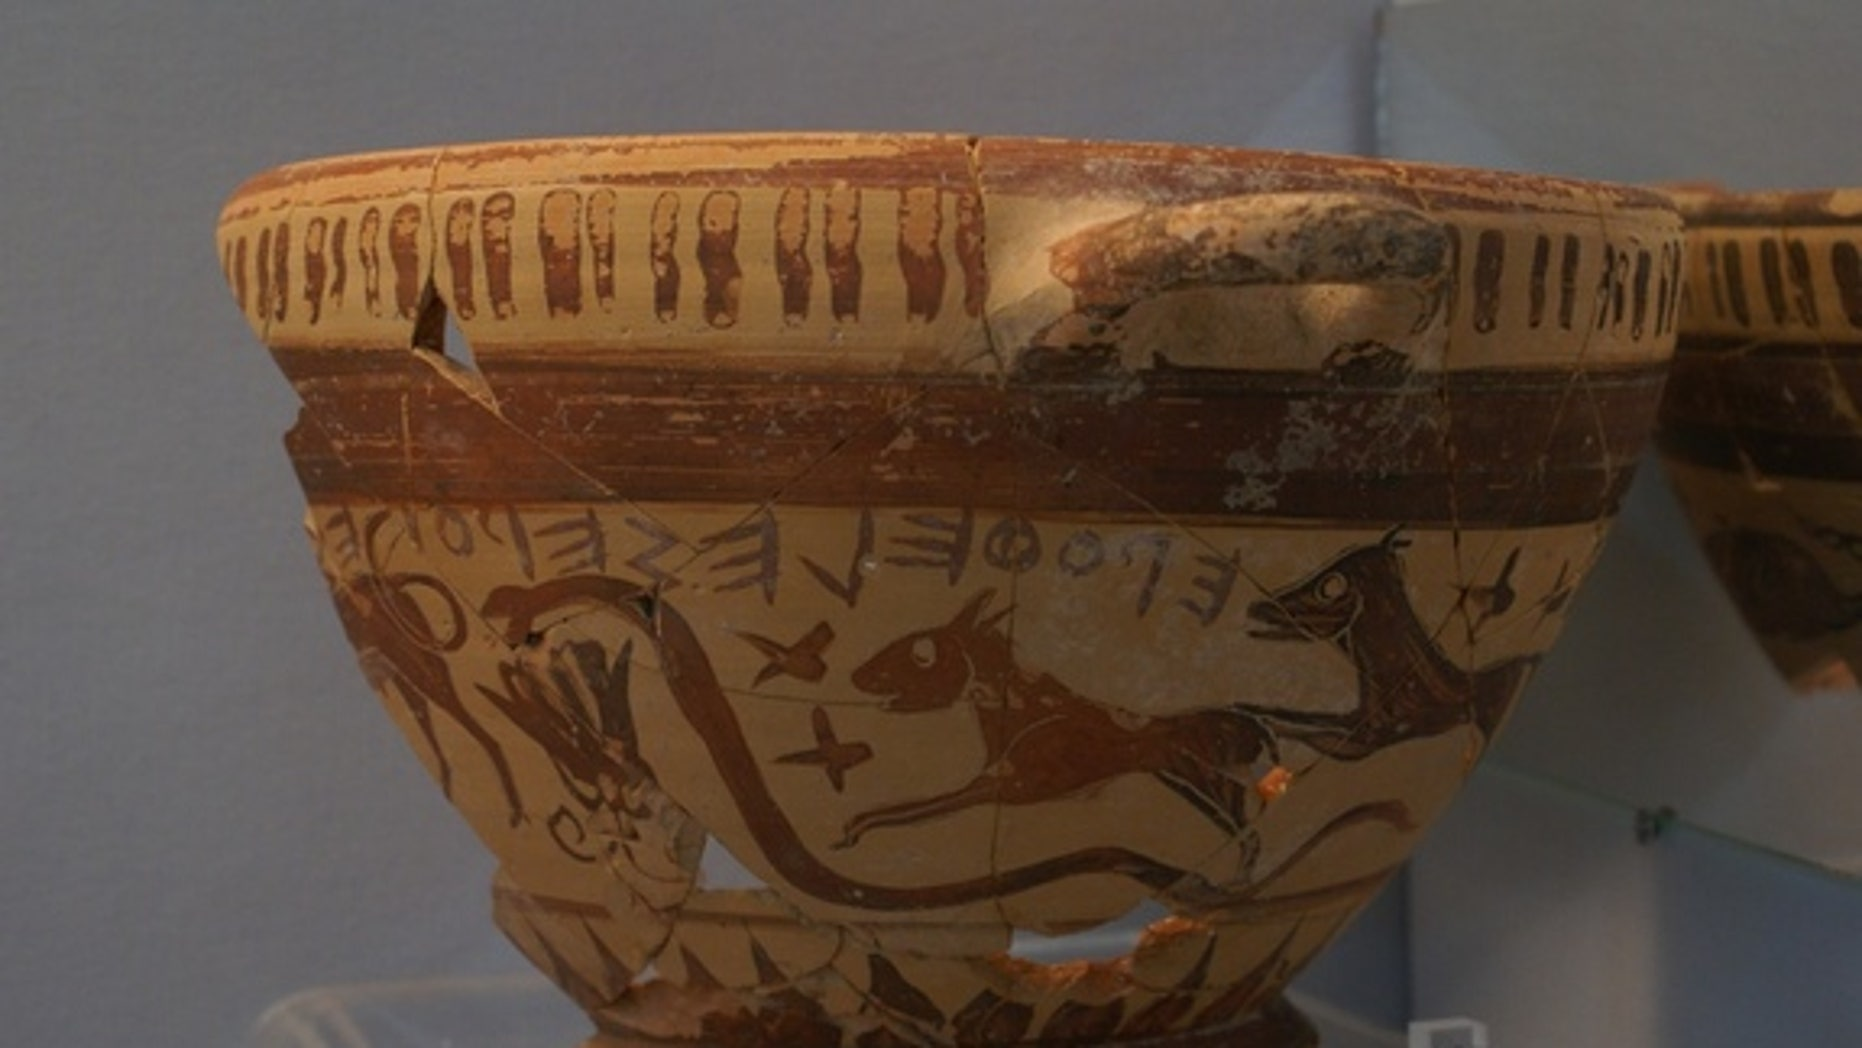 A two-handled wine cup may hold some of the earliest Greek depictions of the constellations. Here, a bull, snake, rabbit/small dog and large dog decorations.